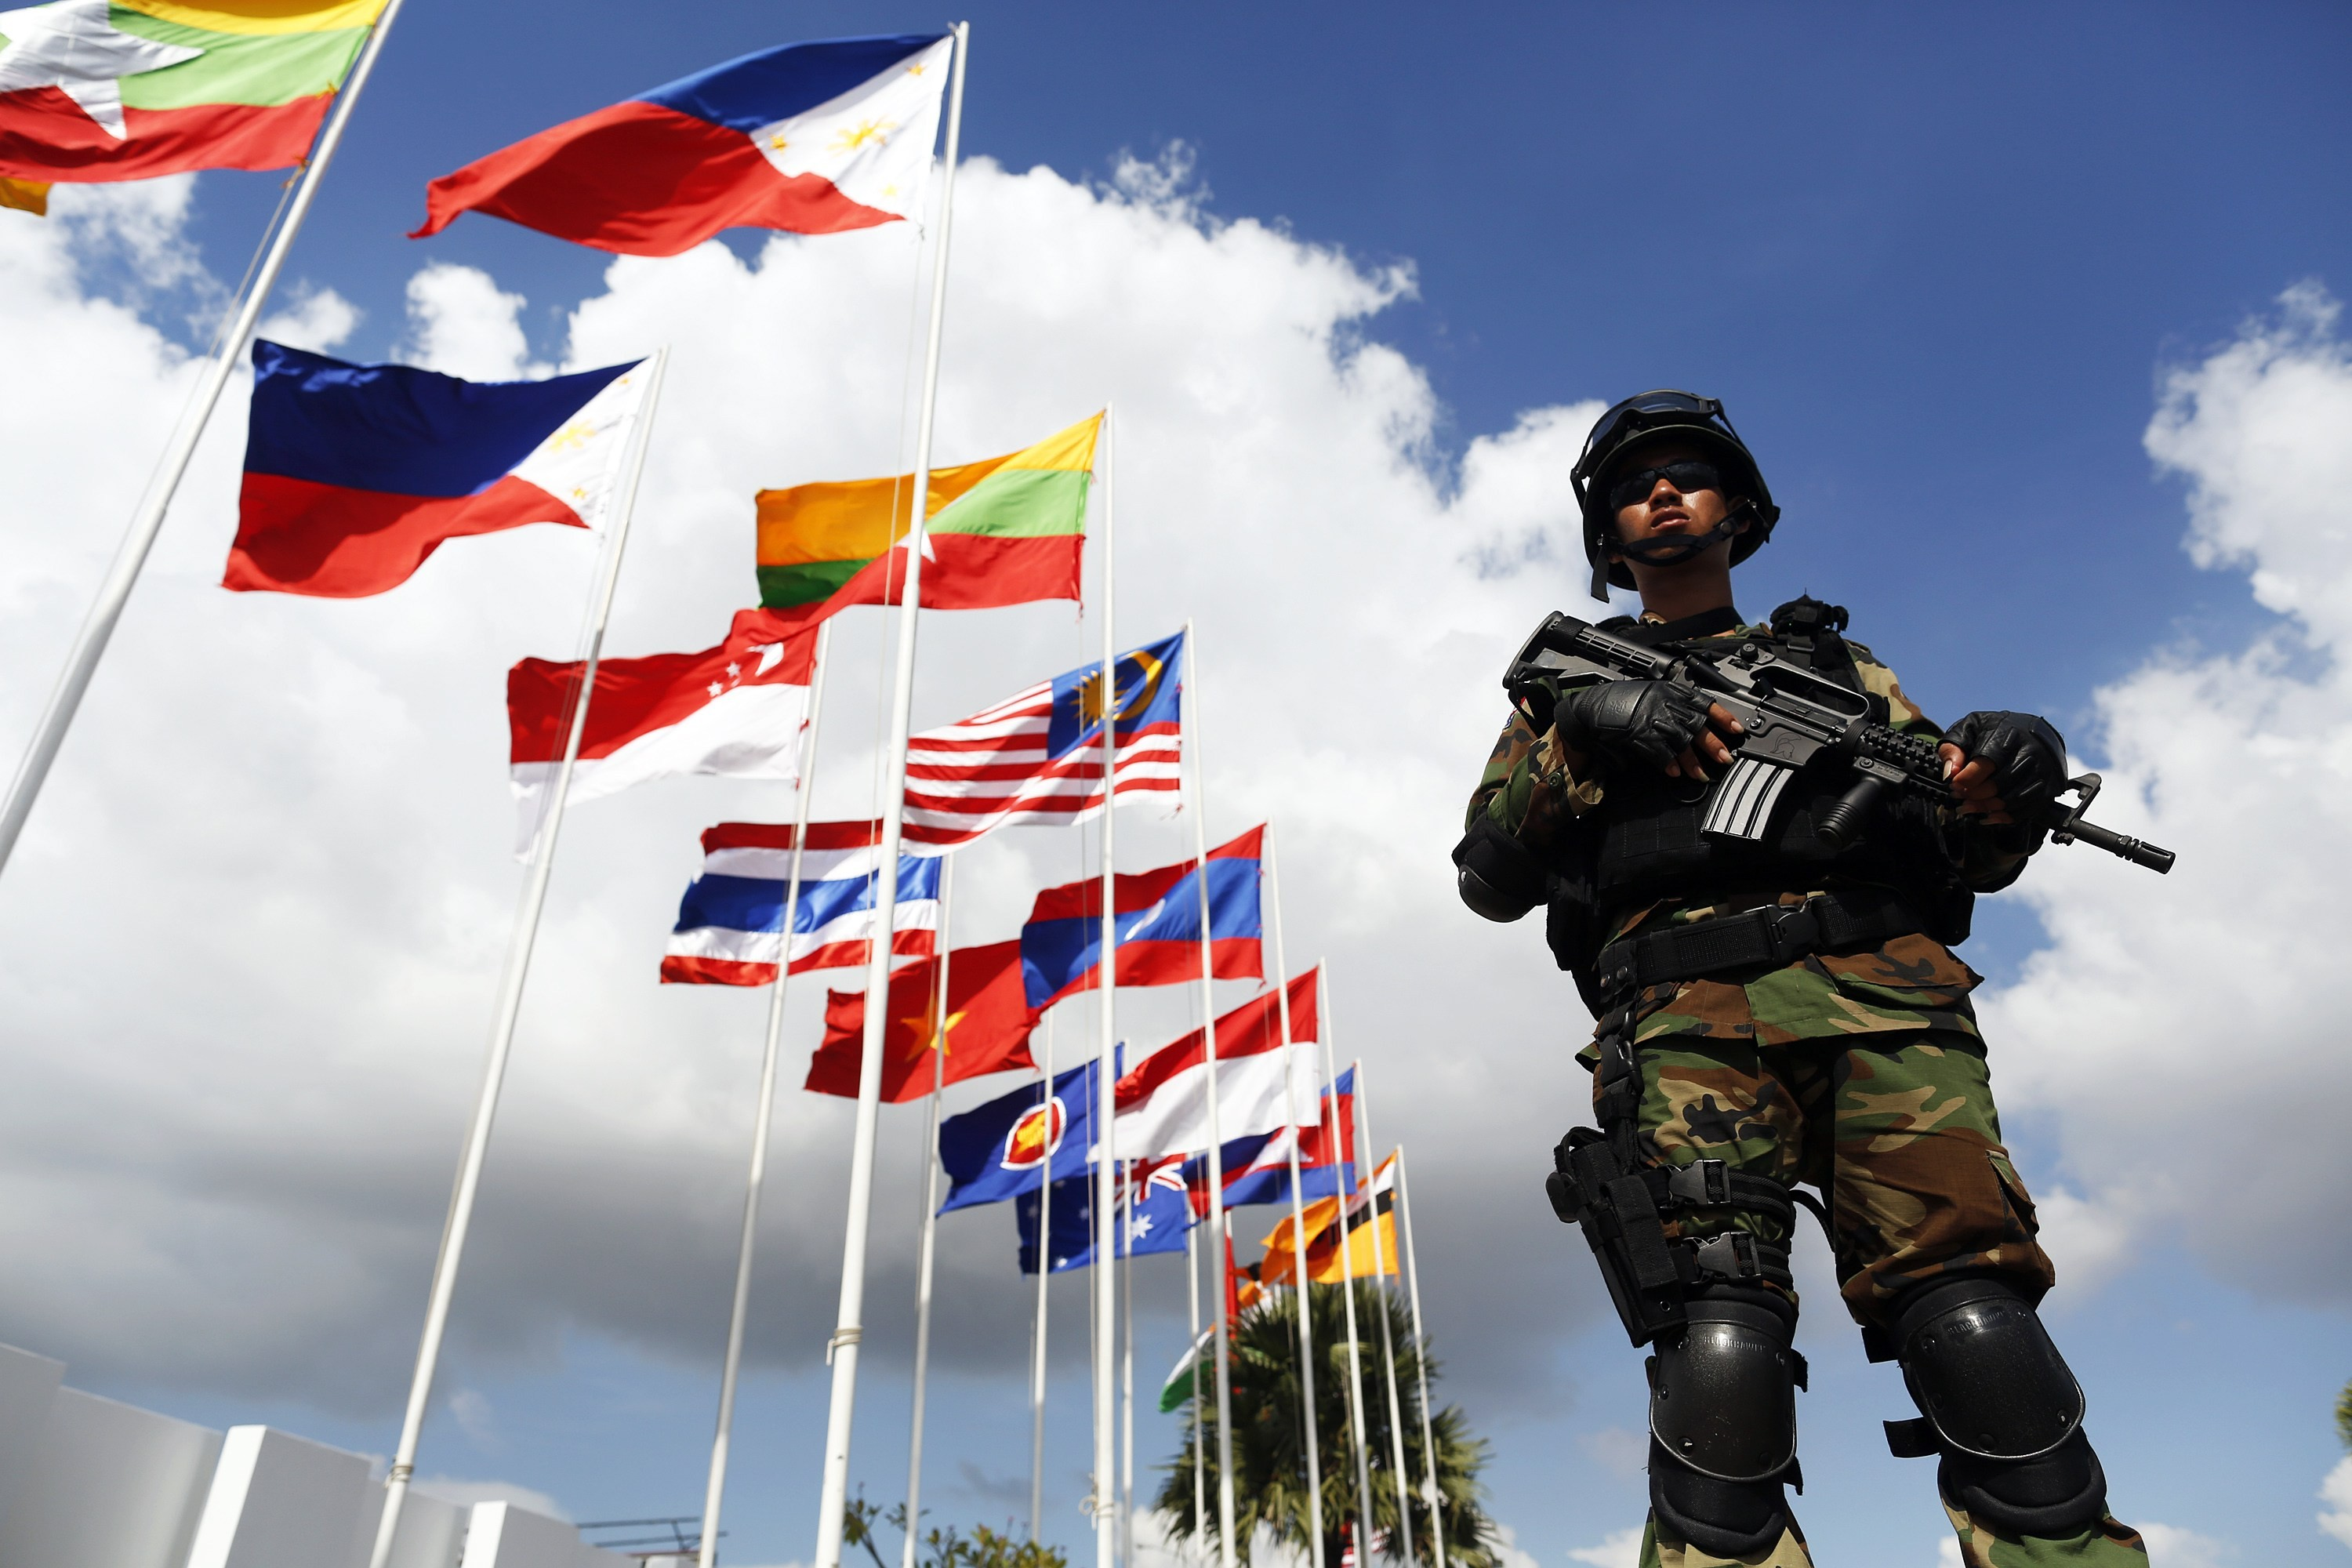 Threat of War Hangs Over the Association of South East Asian Nations (ASEAN) Summit